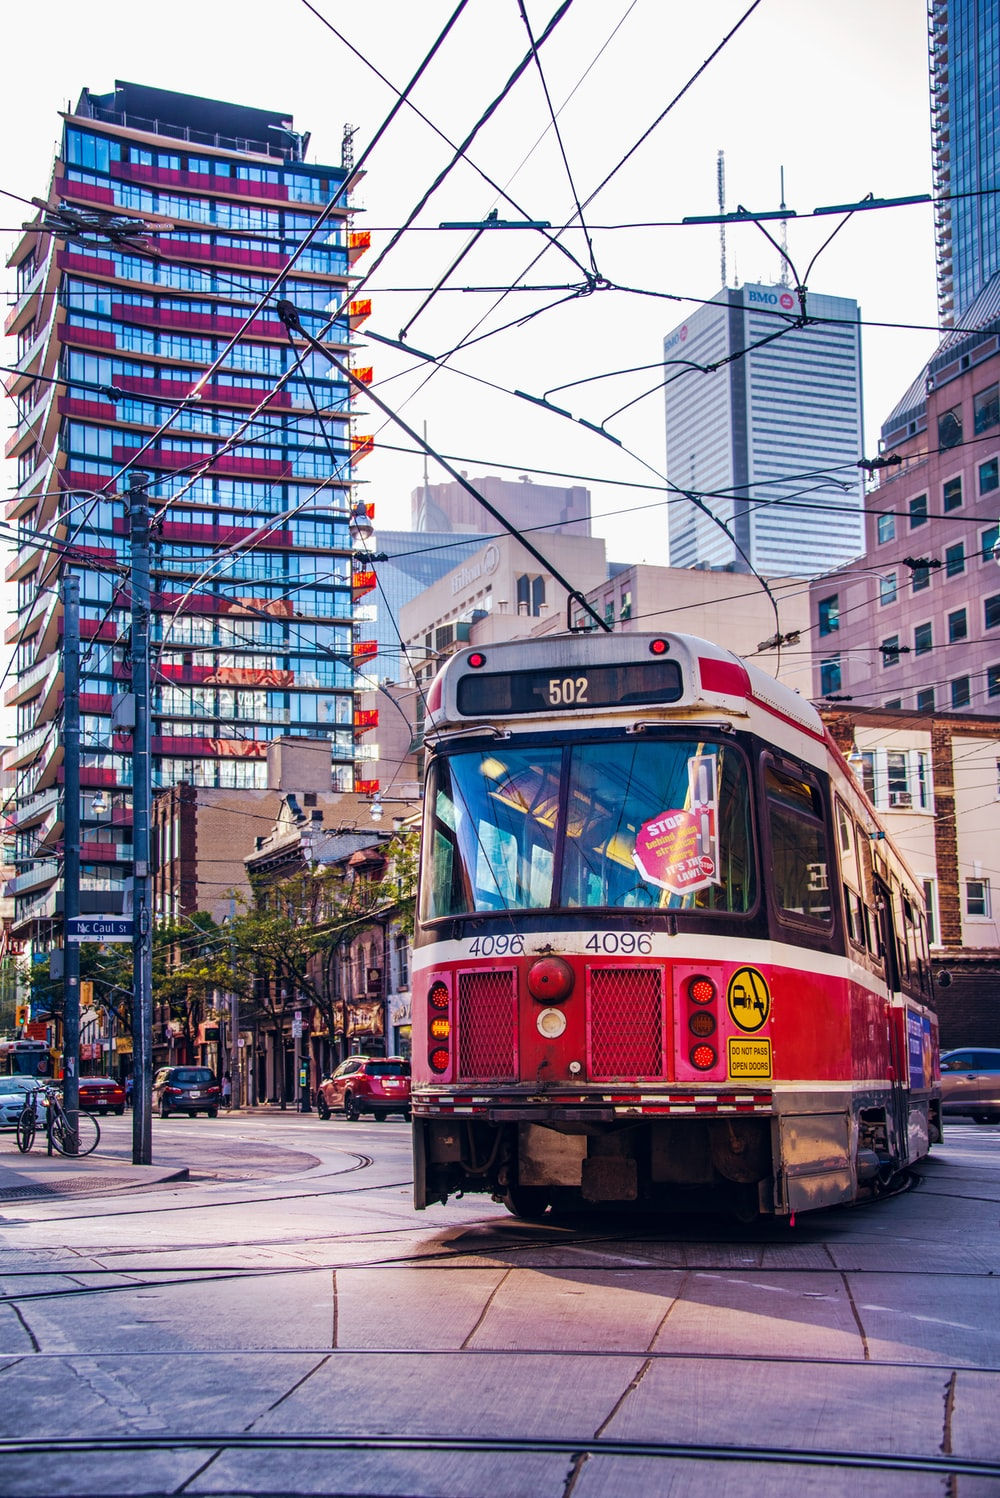 red city tram near blue glass building during daytime